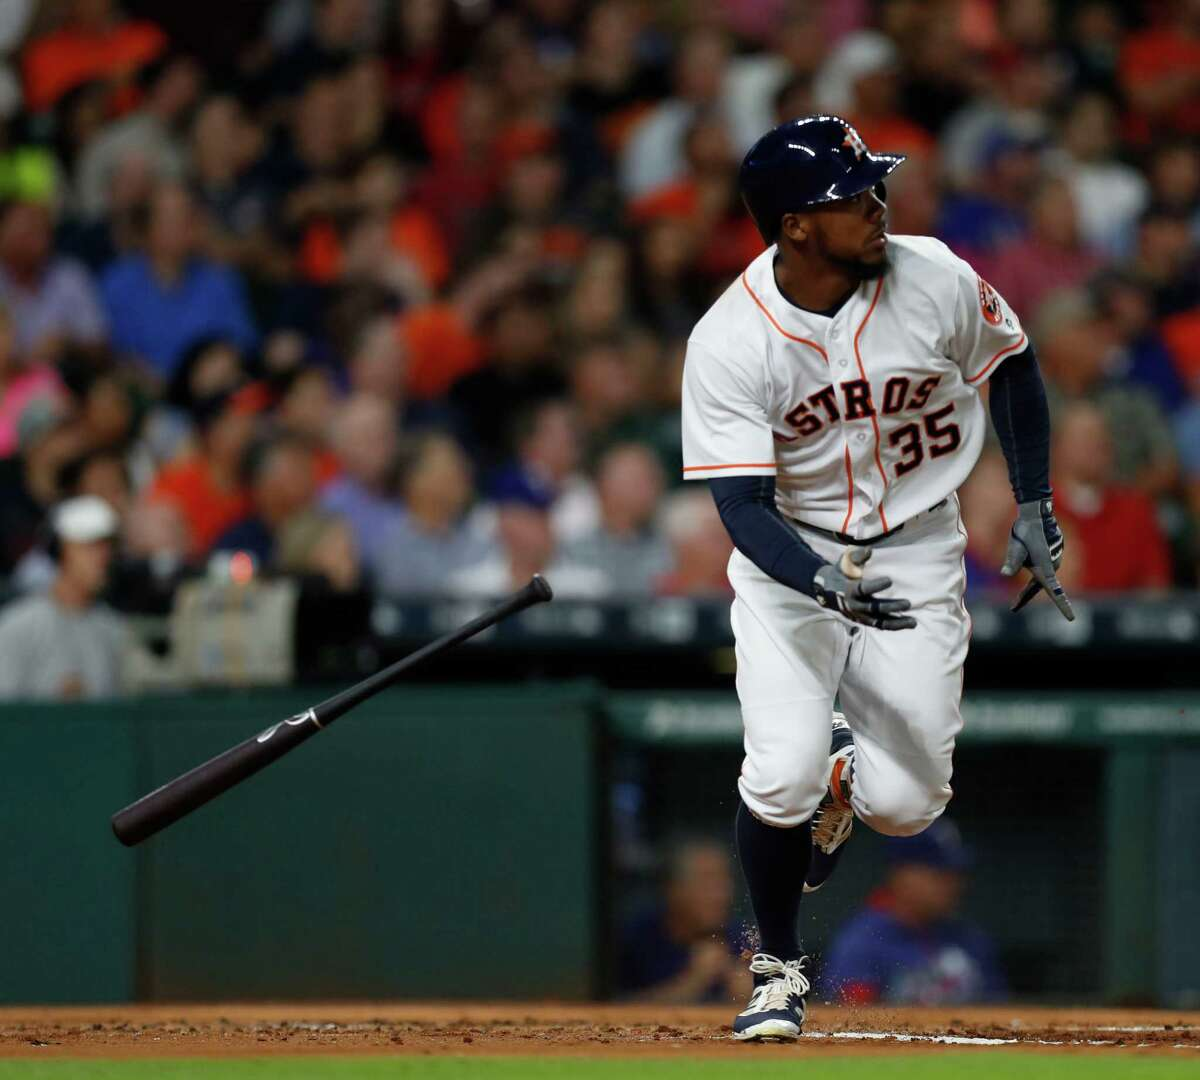 Astros left fielder Teoscar Hernandez hustles out of the batter's box in the second inning before going into his home-run trot following at two-run shot.